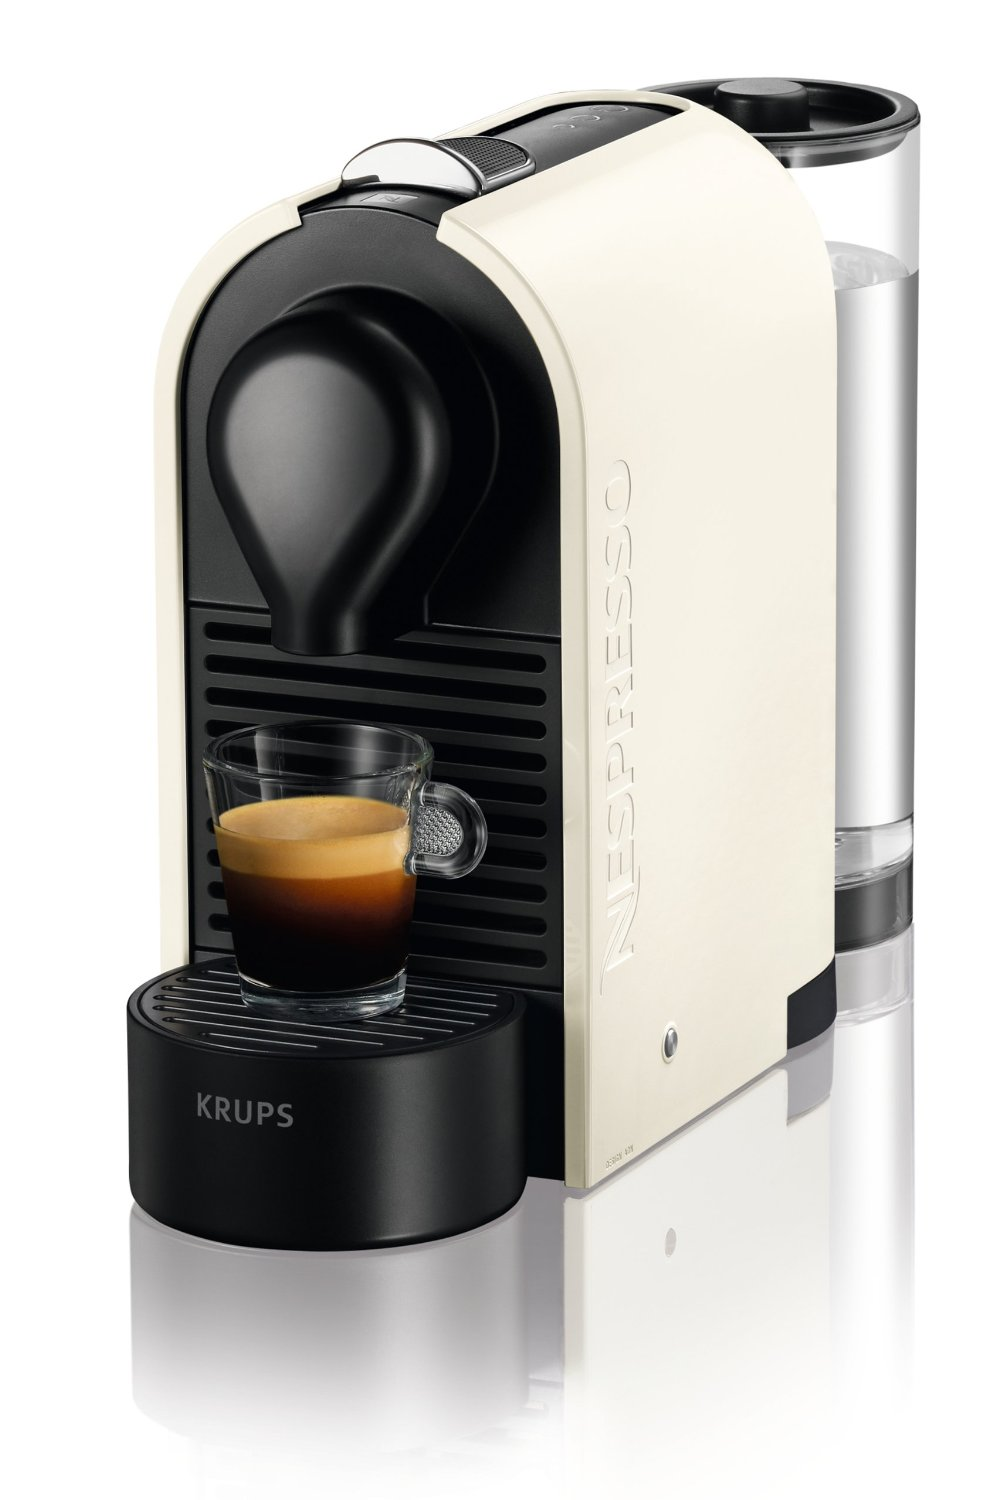 nespresso u krups xn 2511 kapselmaschine mit aeroccino3. Black Bedroom Furniture Sets. Home Design Ideas